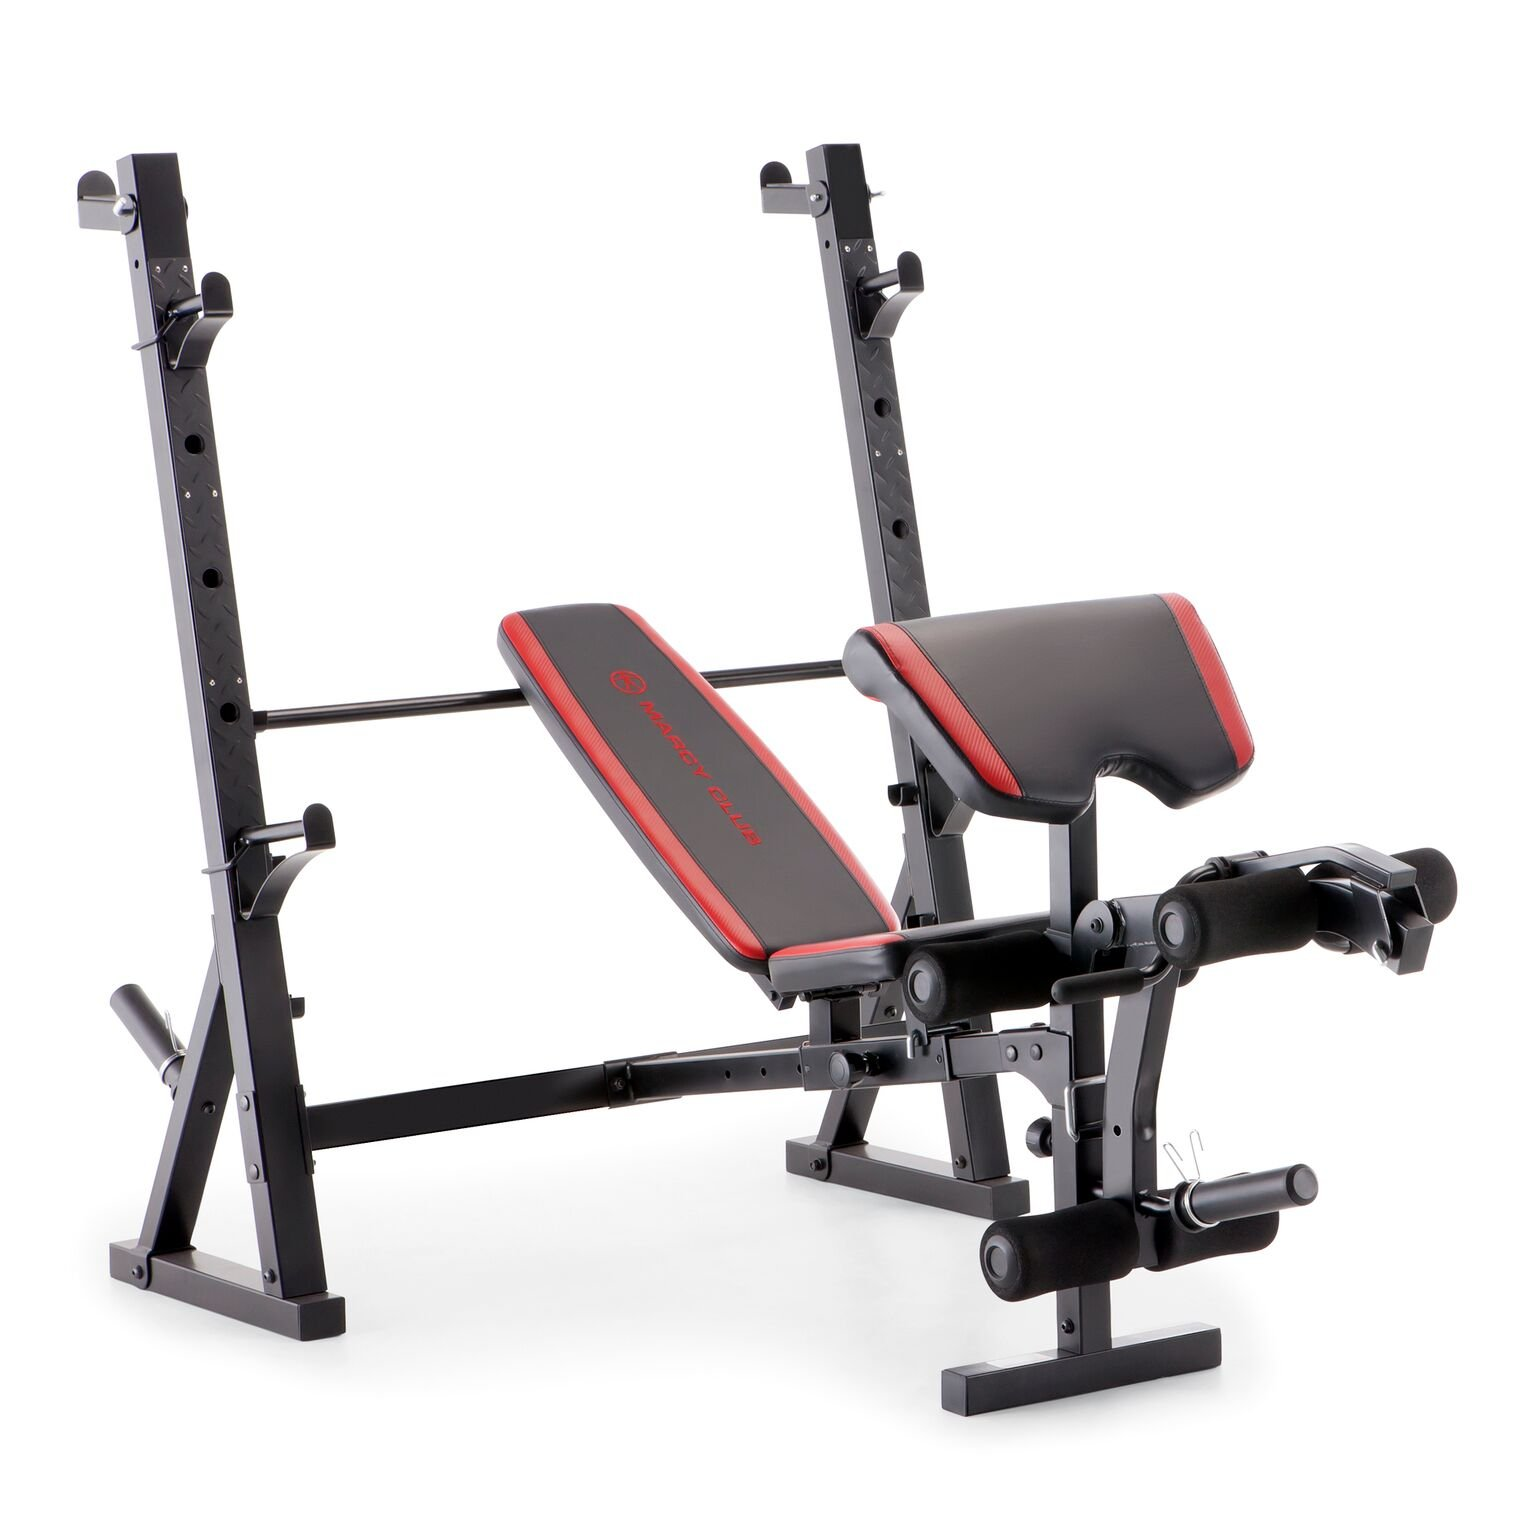 Marcy Home Gym Workout Fitness Exercise Deluxe Olympic Weight Lifting Bench by Marcy Fitness